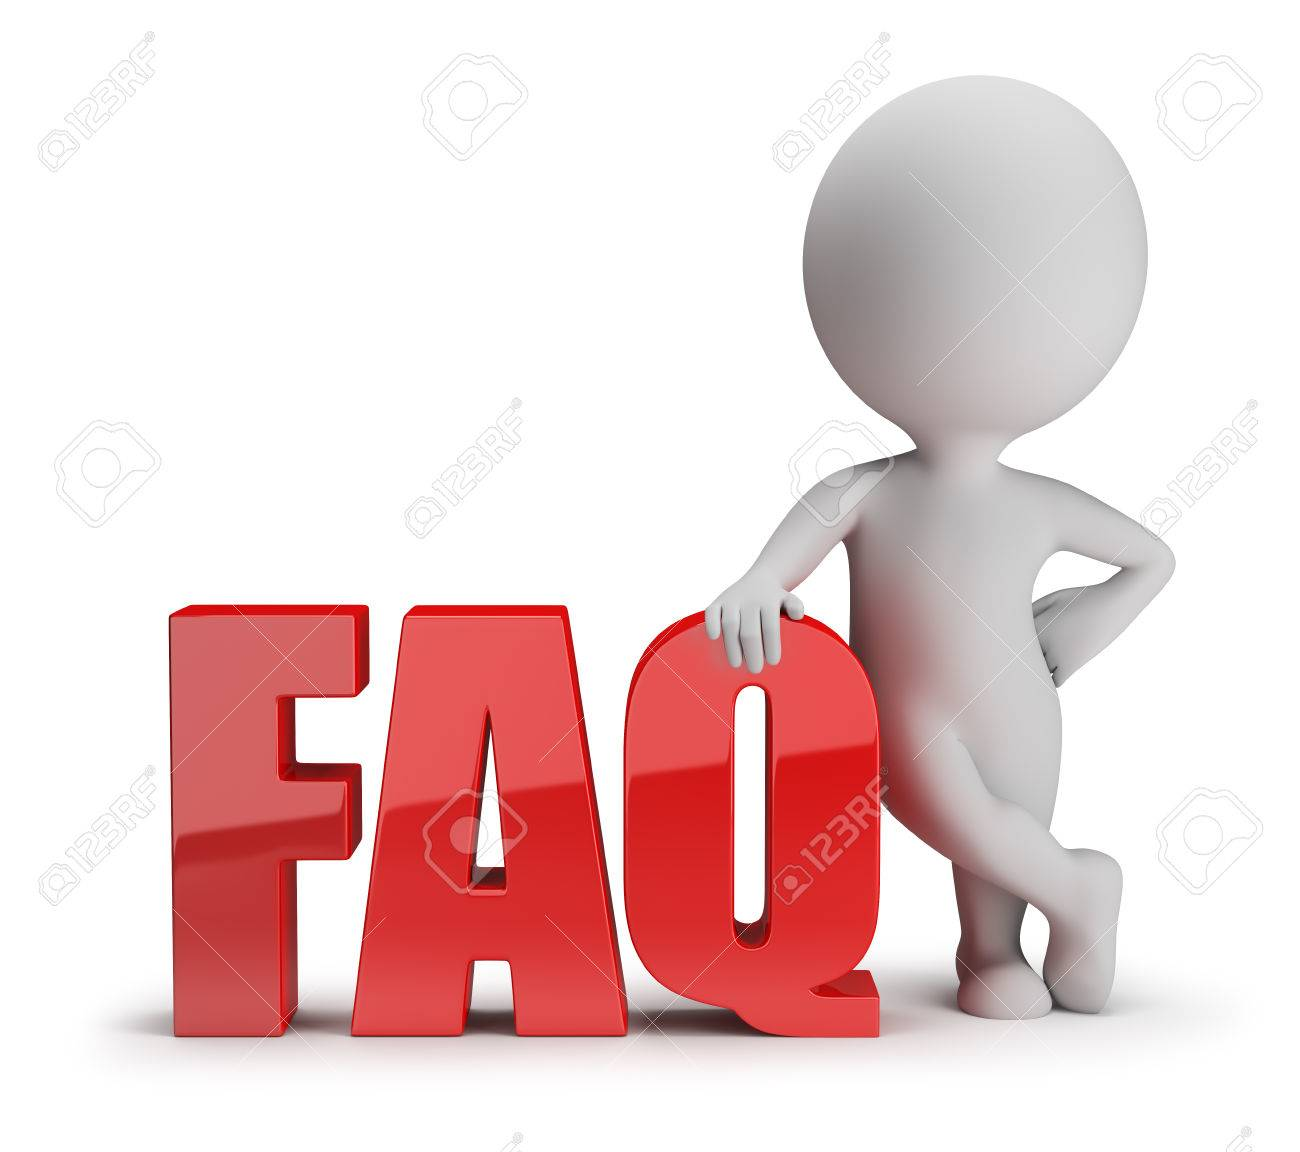 3d small person standing next to FAQ  3d image  White background Stock Photo - 27727217